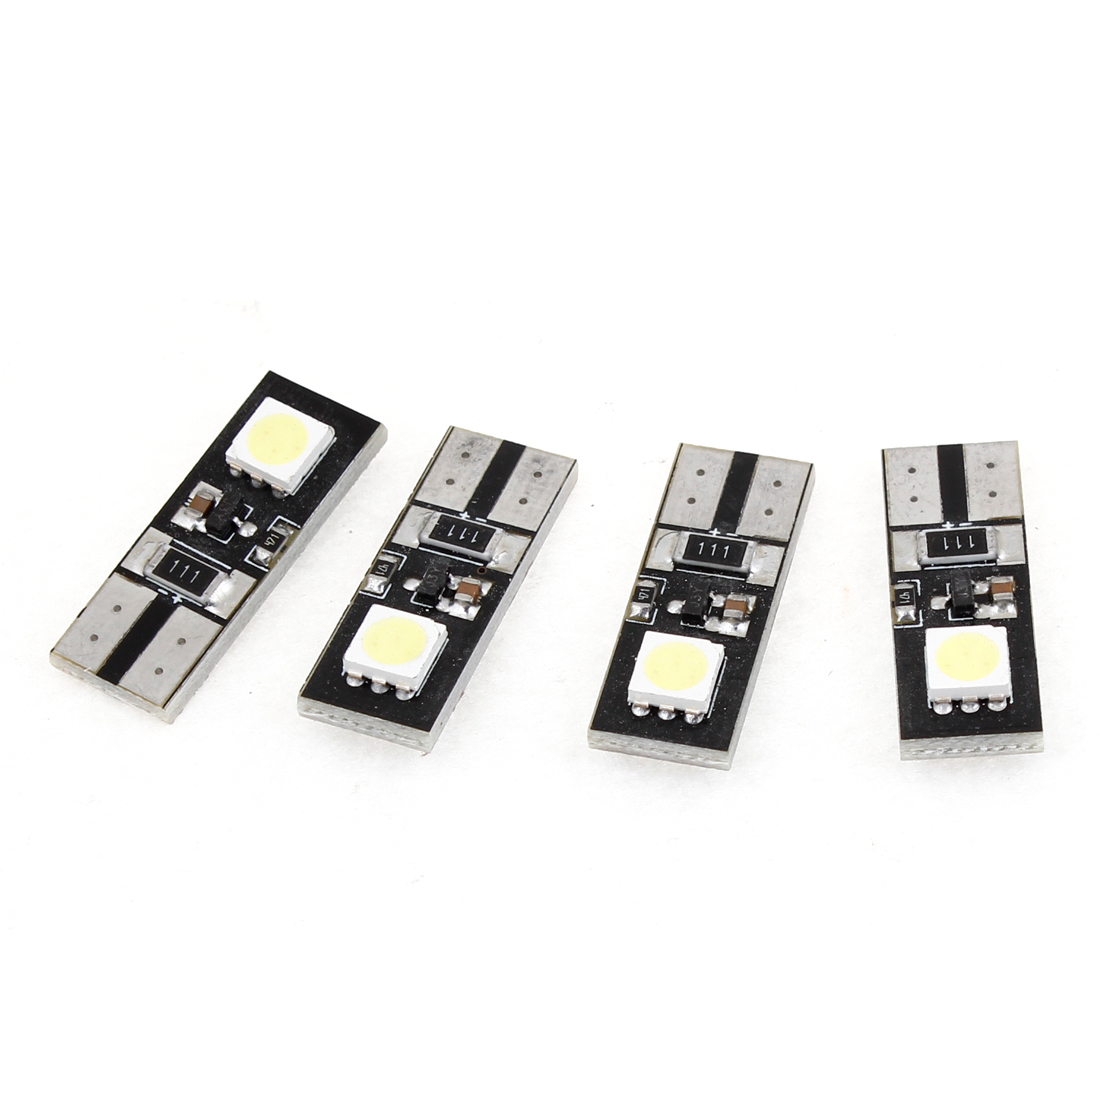 4 x Car T10 W5W White Error Free Canbus 5050 SMD 2 LED Lights Bulbs Lamps